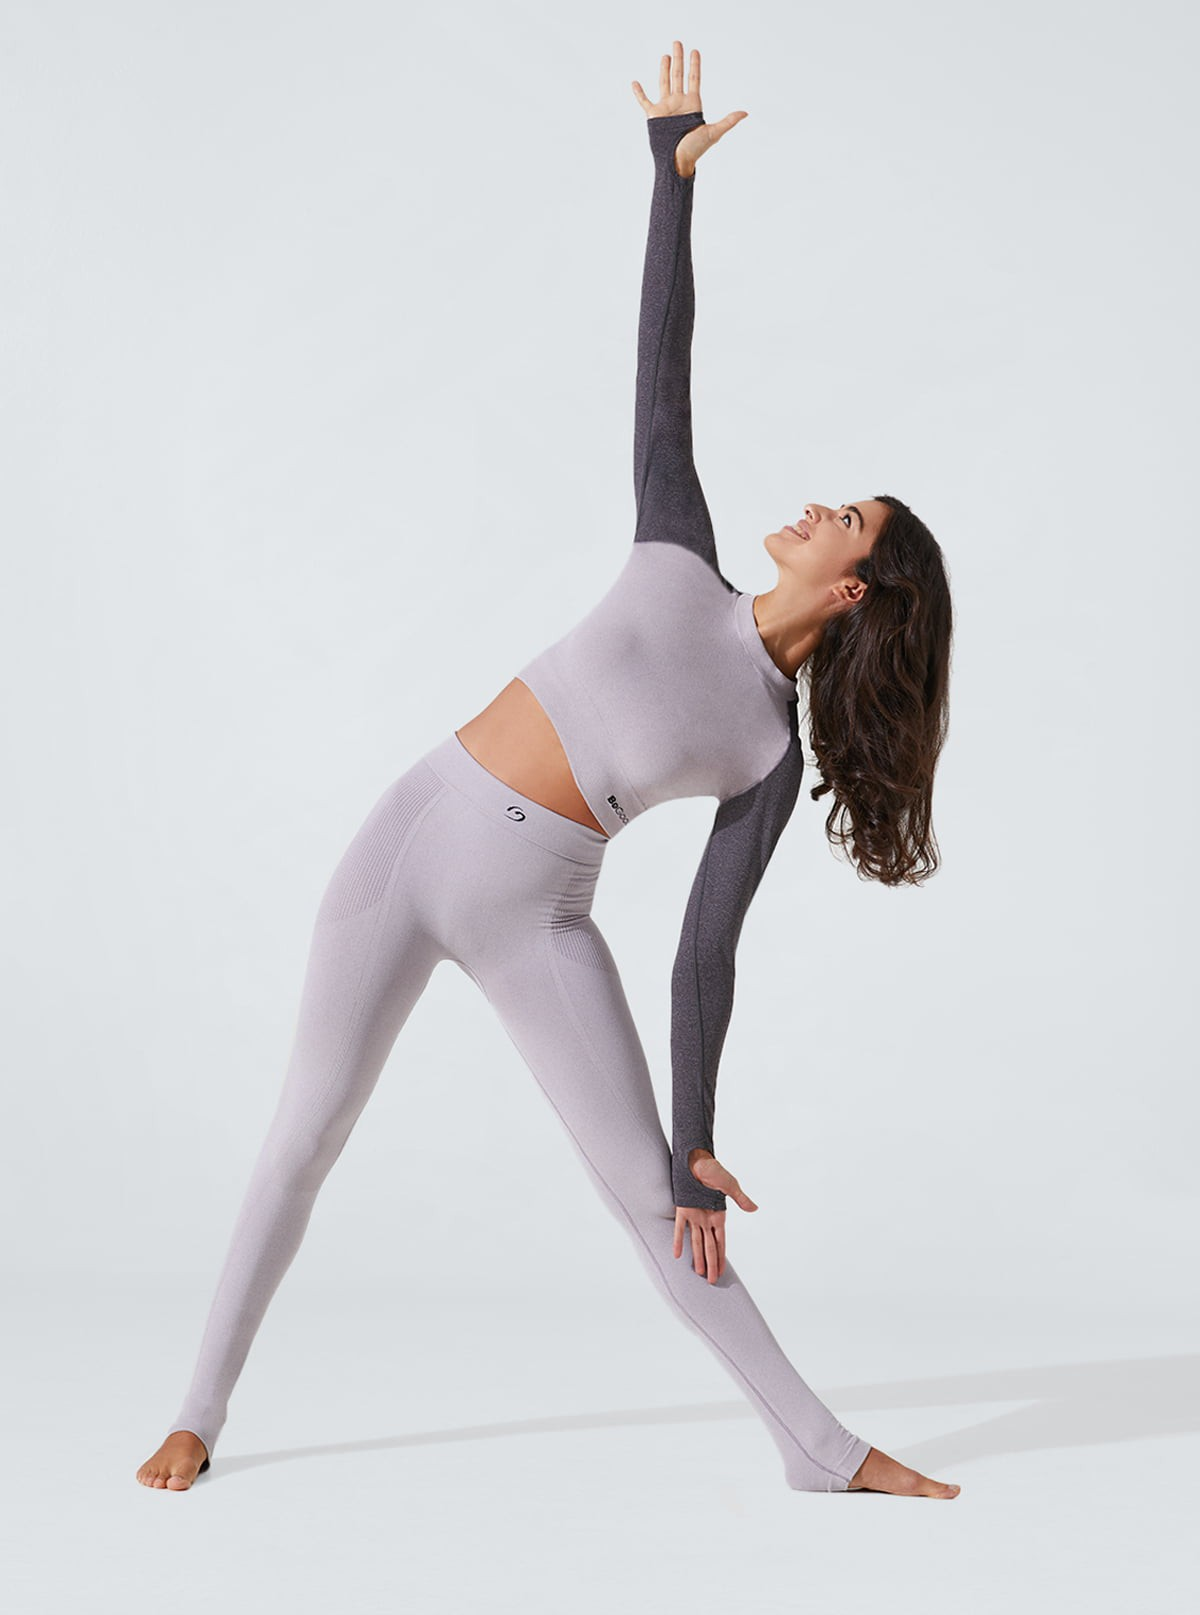 Women's Yoga Outfit: Leggings and slimming, draining and hydrating Top